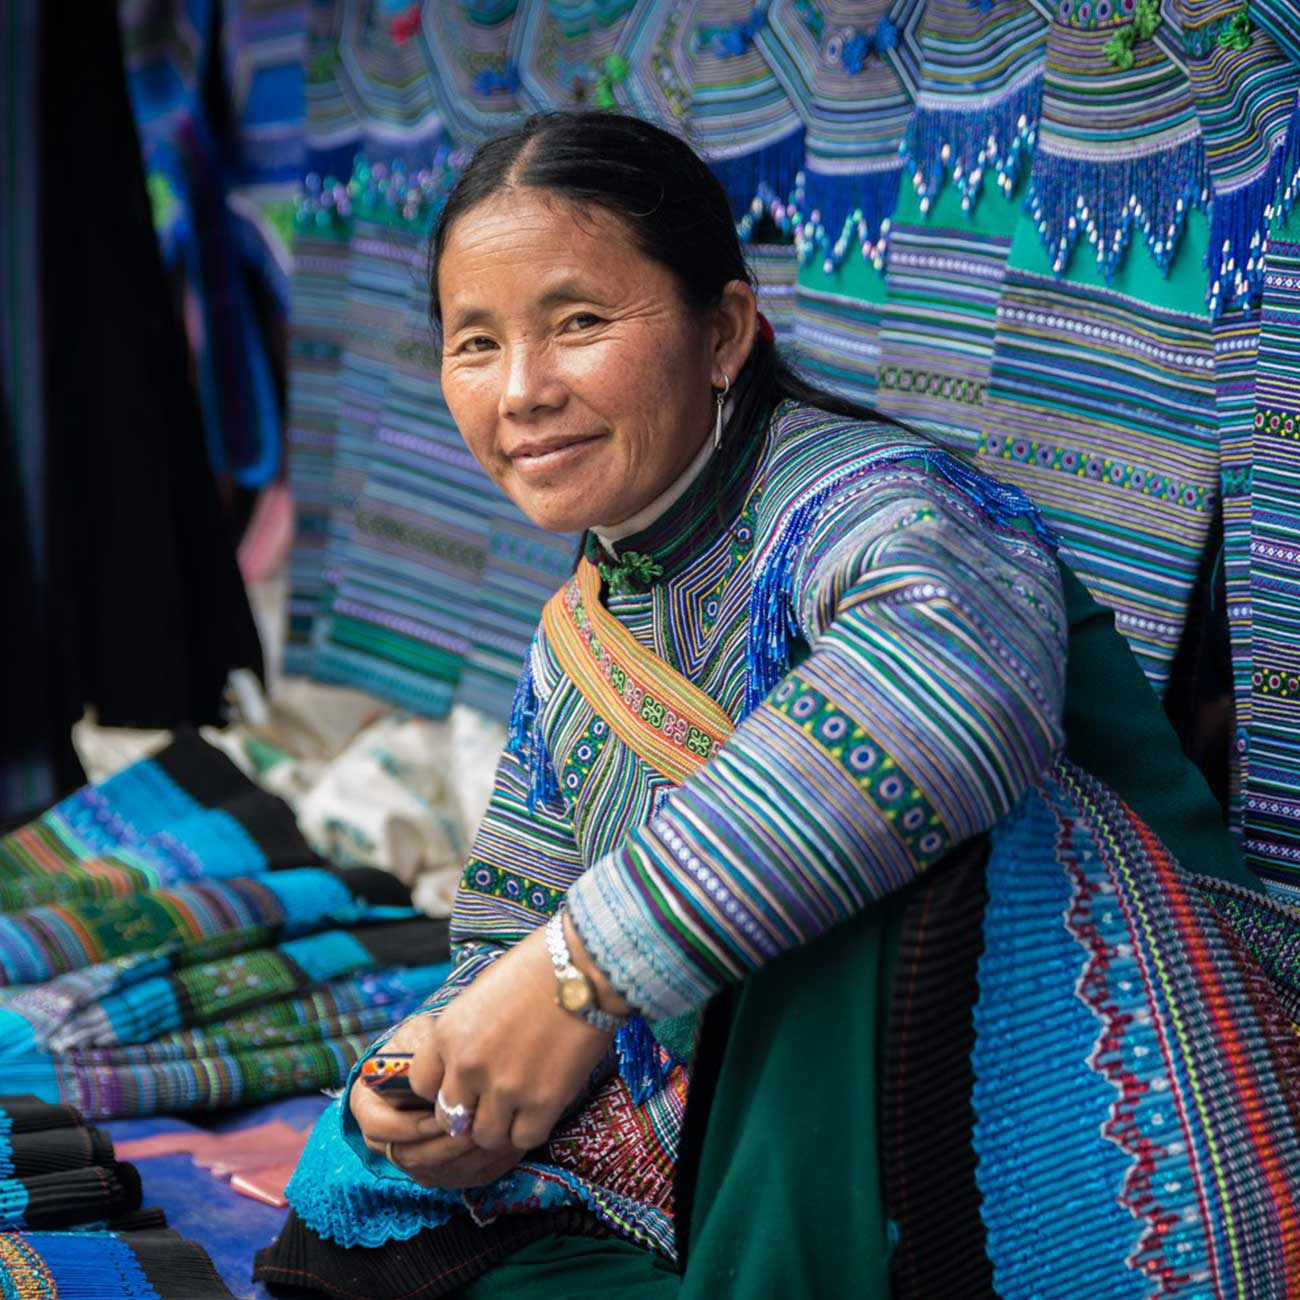 The Flower Hmong